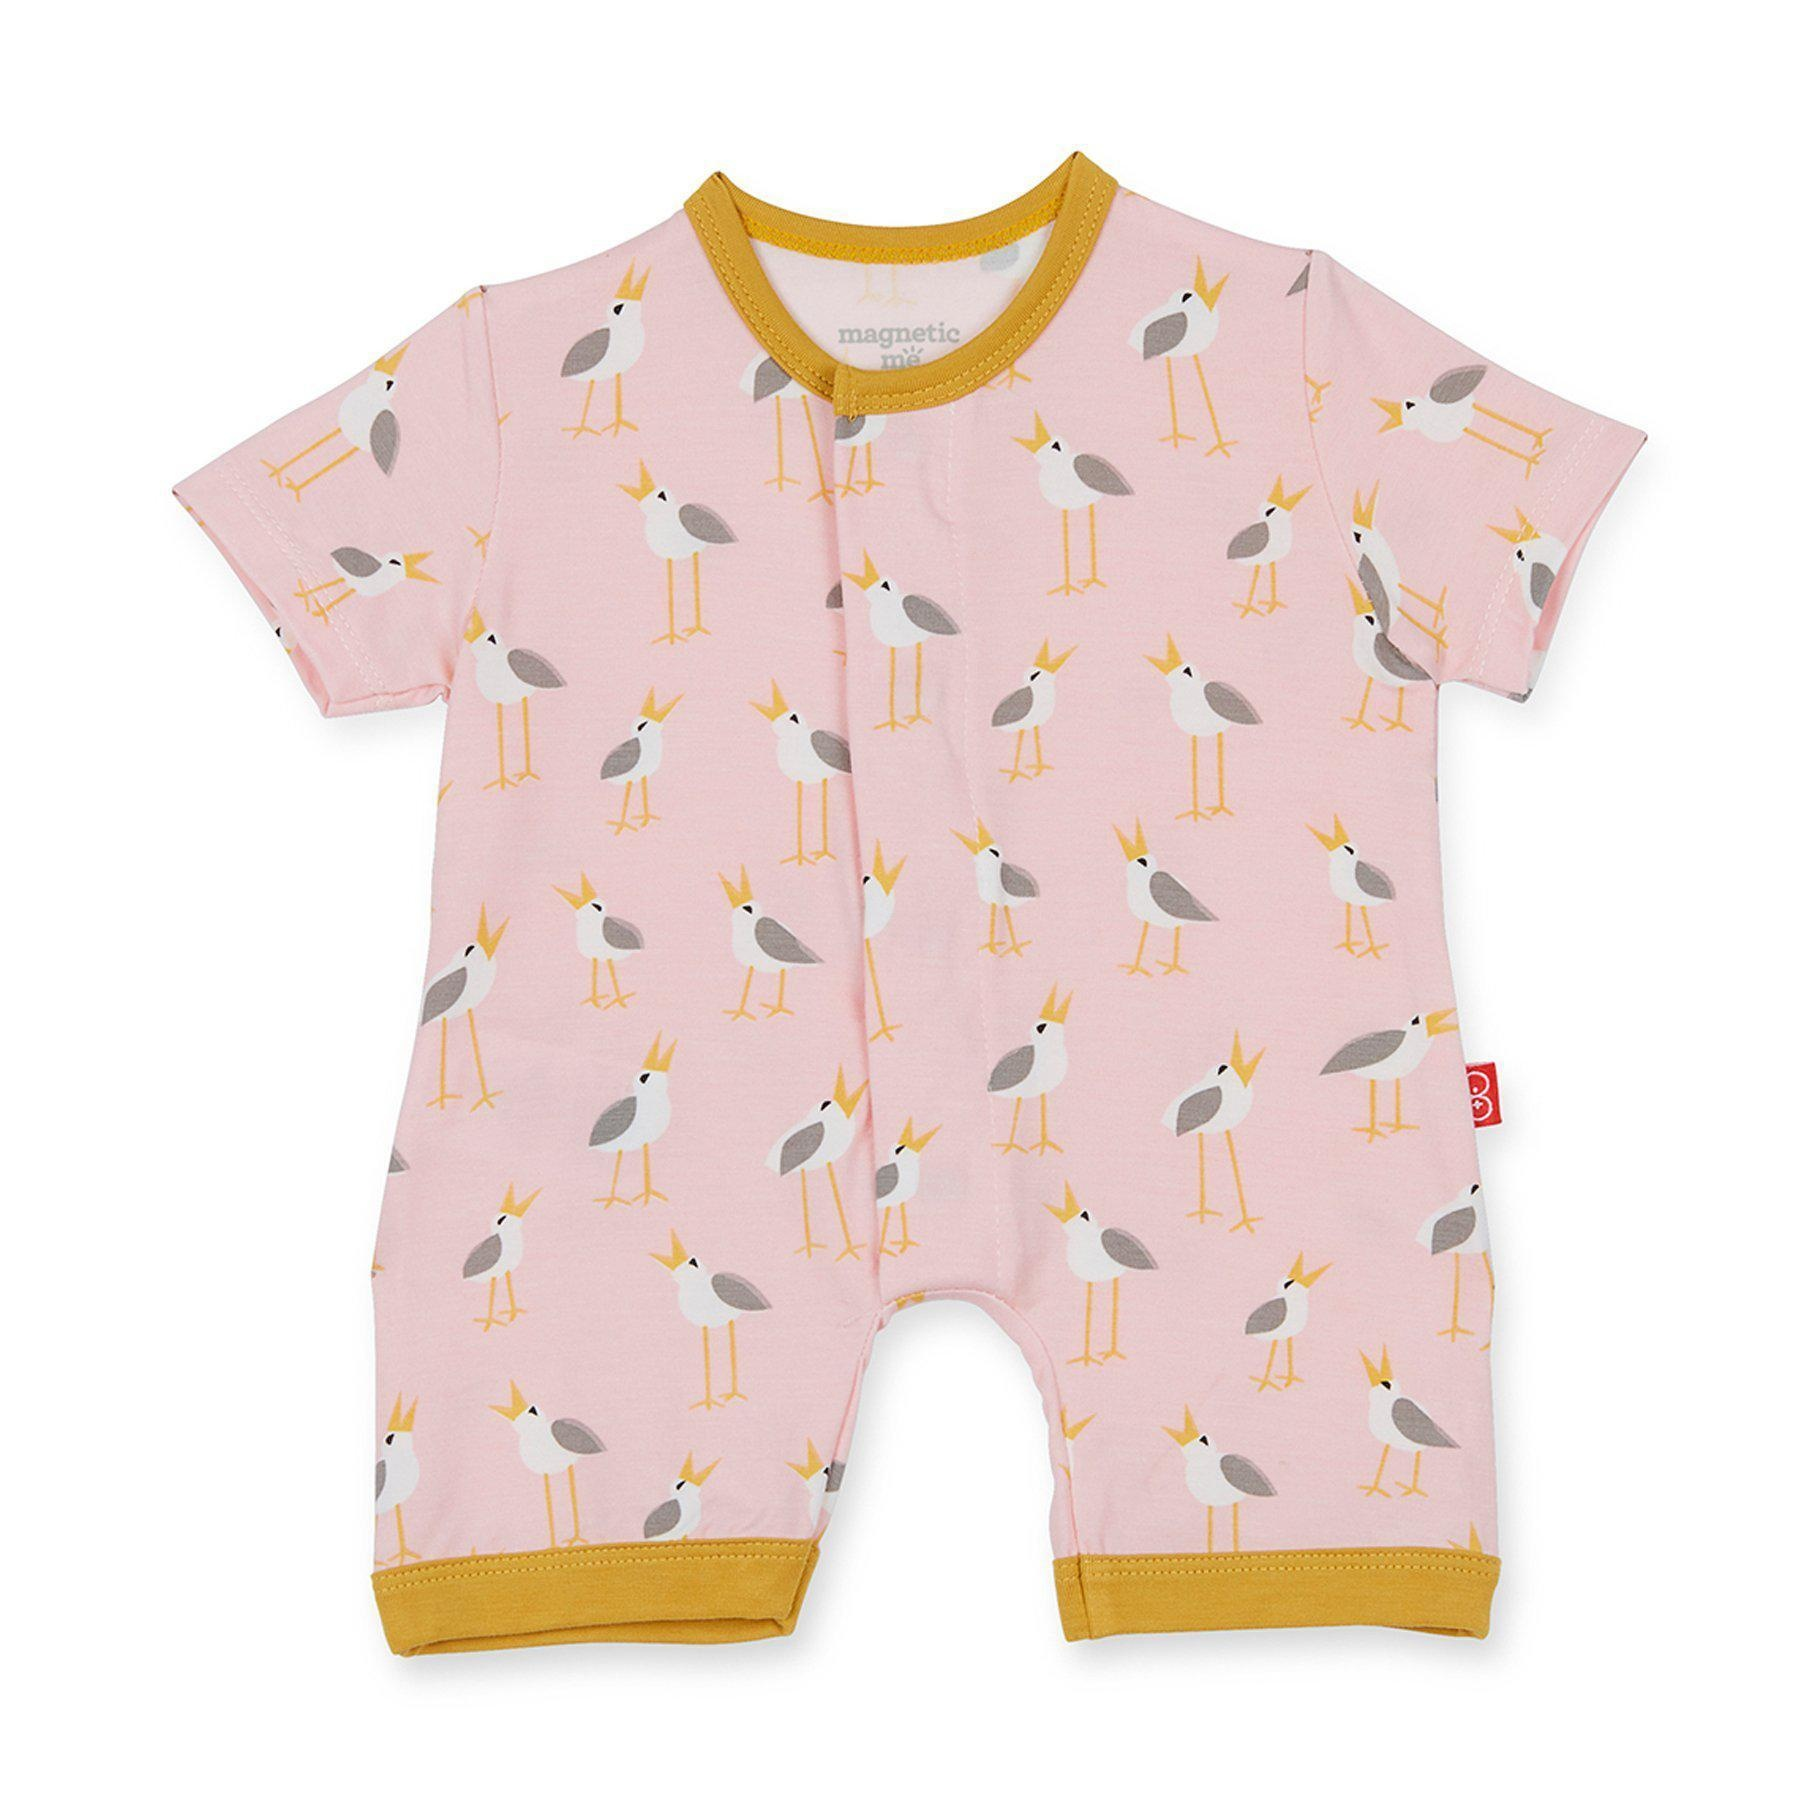 Magnetic Me Magnetic Me Modal Romper - Pink Plovers